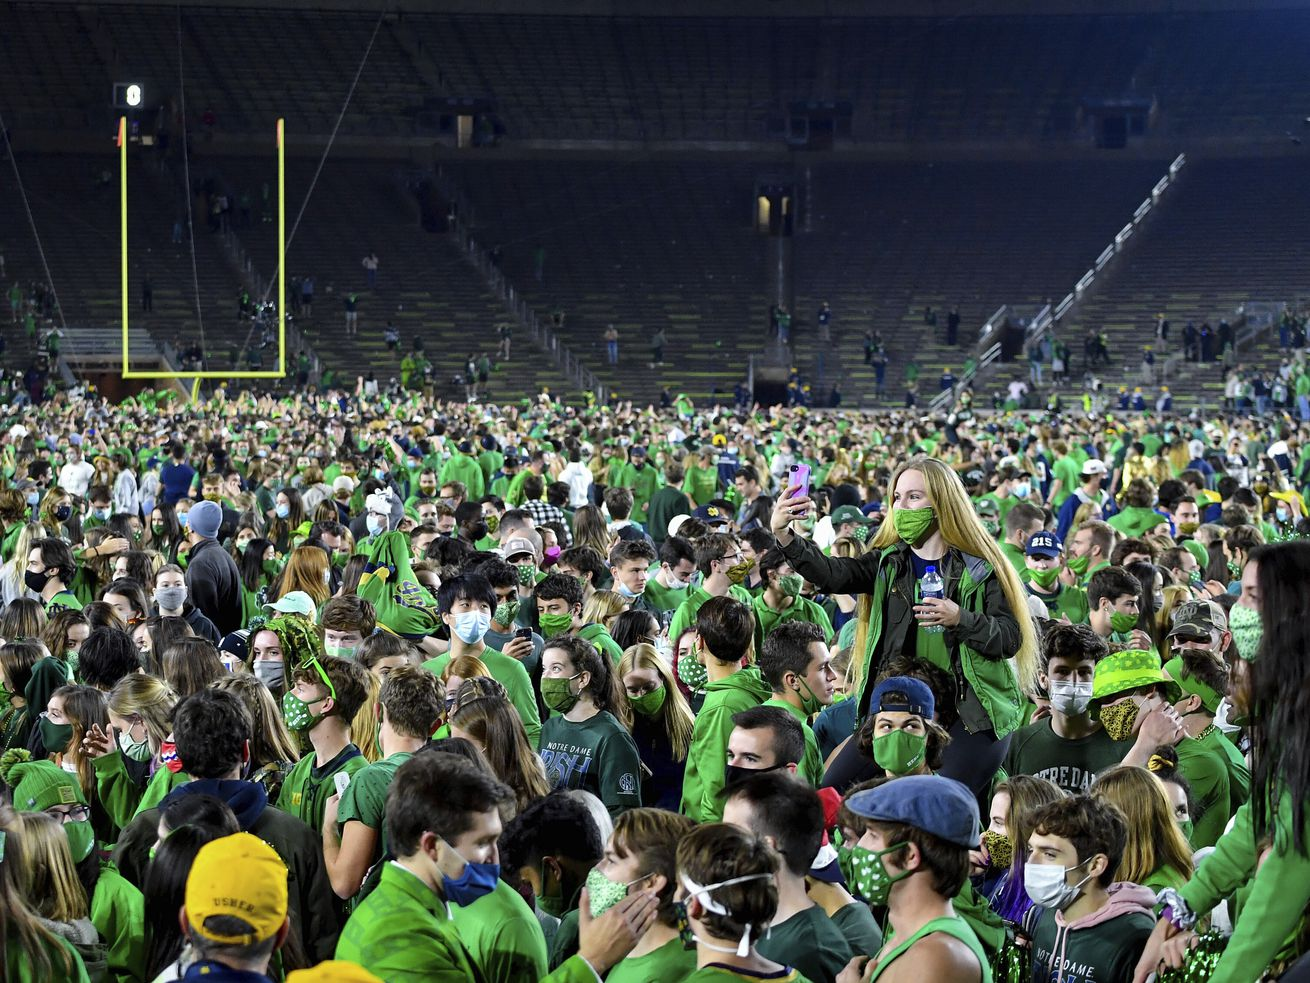 Fans storm the field after Notre Dame defeated the Clemson 47-40 in two overtimes in an NCAA college football game Saturday, Nov. 7, 2020, in South Bend, Ind.